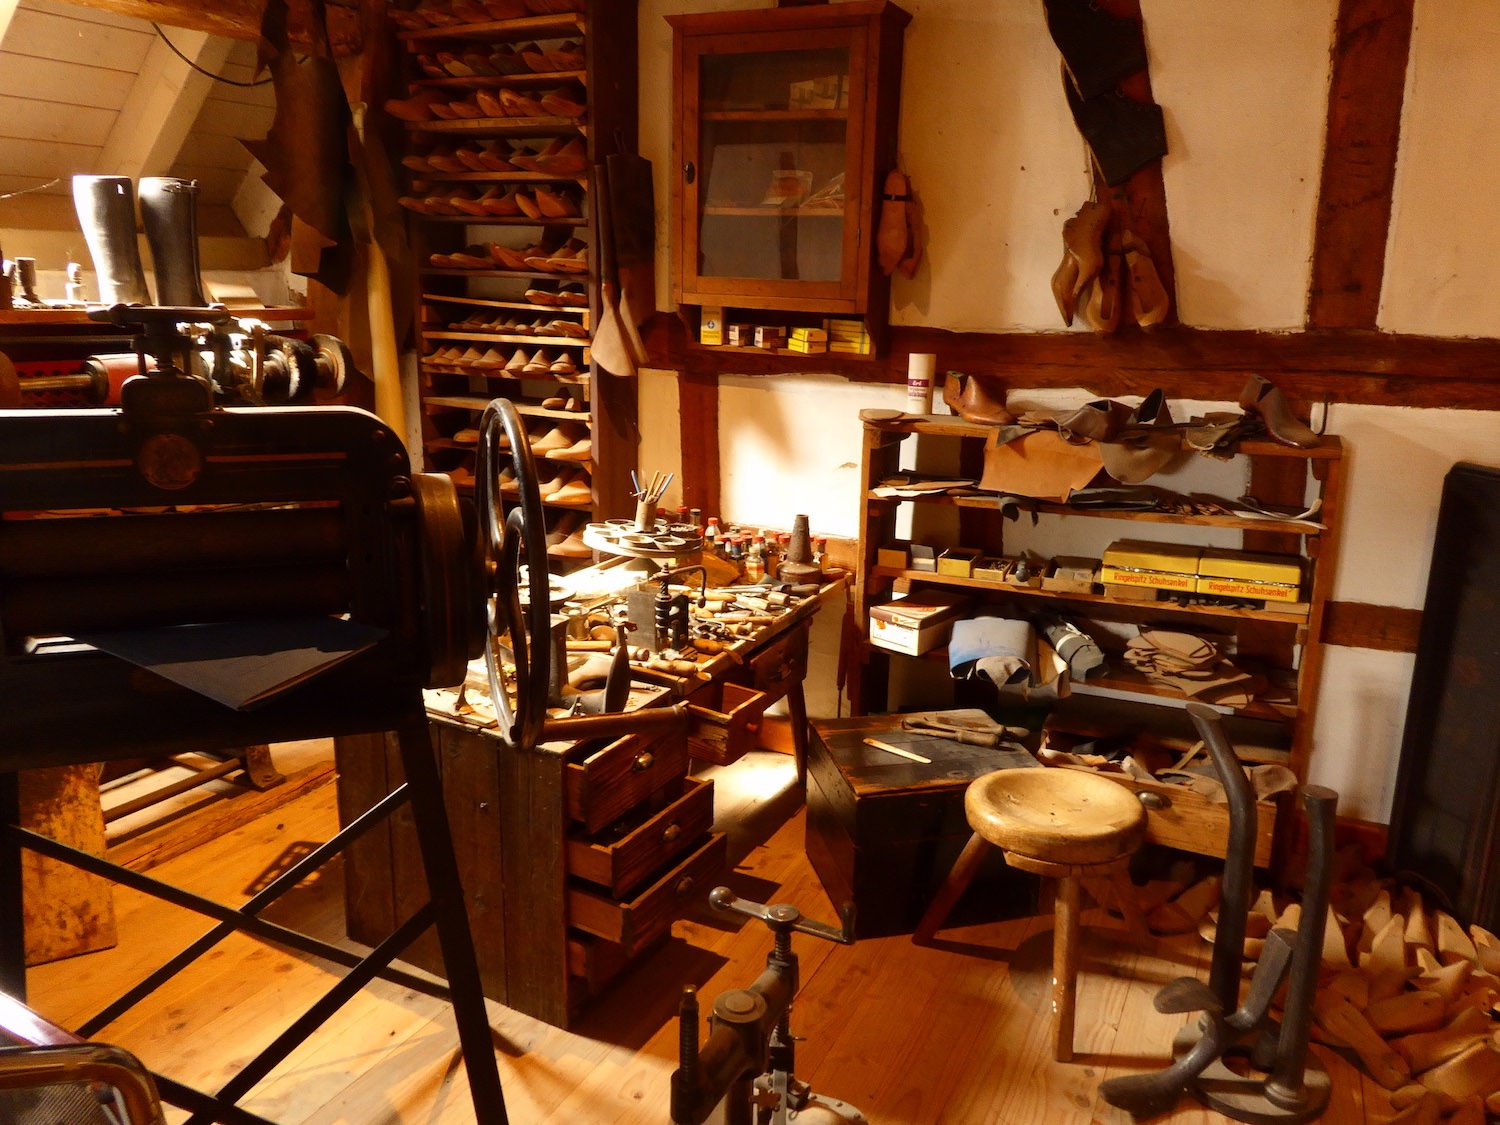 Picture of the exhibition room - old shoemaker workshop. Authentical tools and materials are in place so vsitors can imagine how the workshop was looking back in the days.